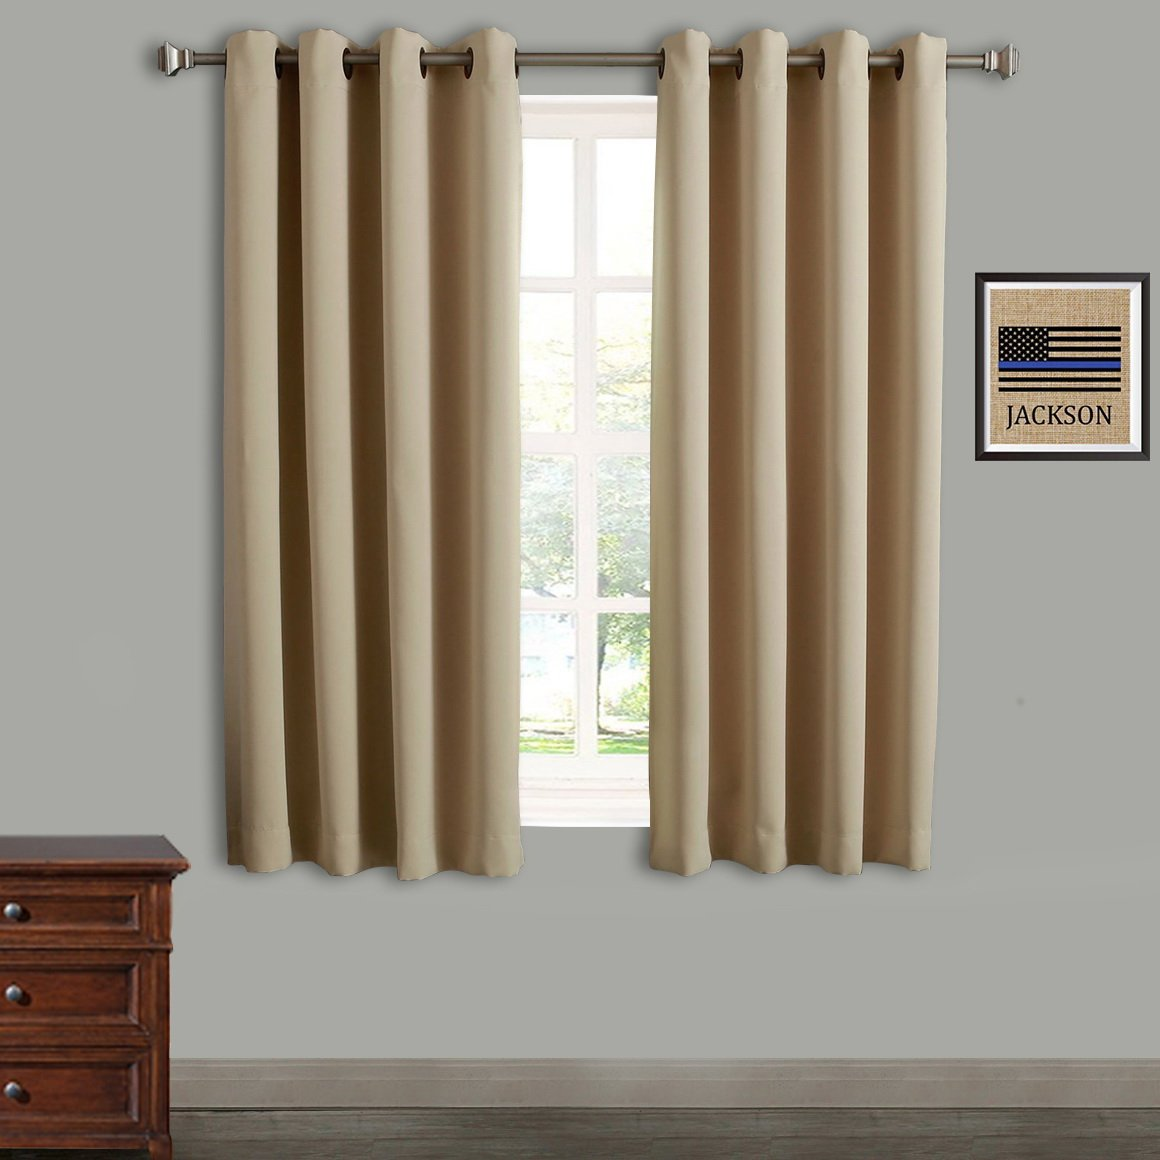 Rose Home Fashion RHF Blackout Thermal Insulated Curtain - Antique Bronze Grommet Top for bedroom-Set of 2 Panels-52W by 63L Inches-Beige-5263p2